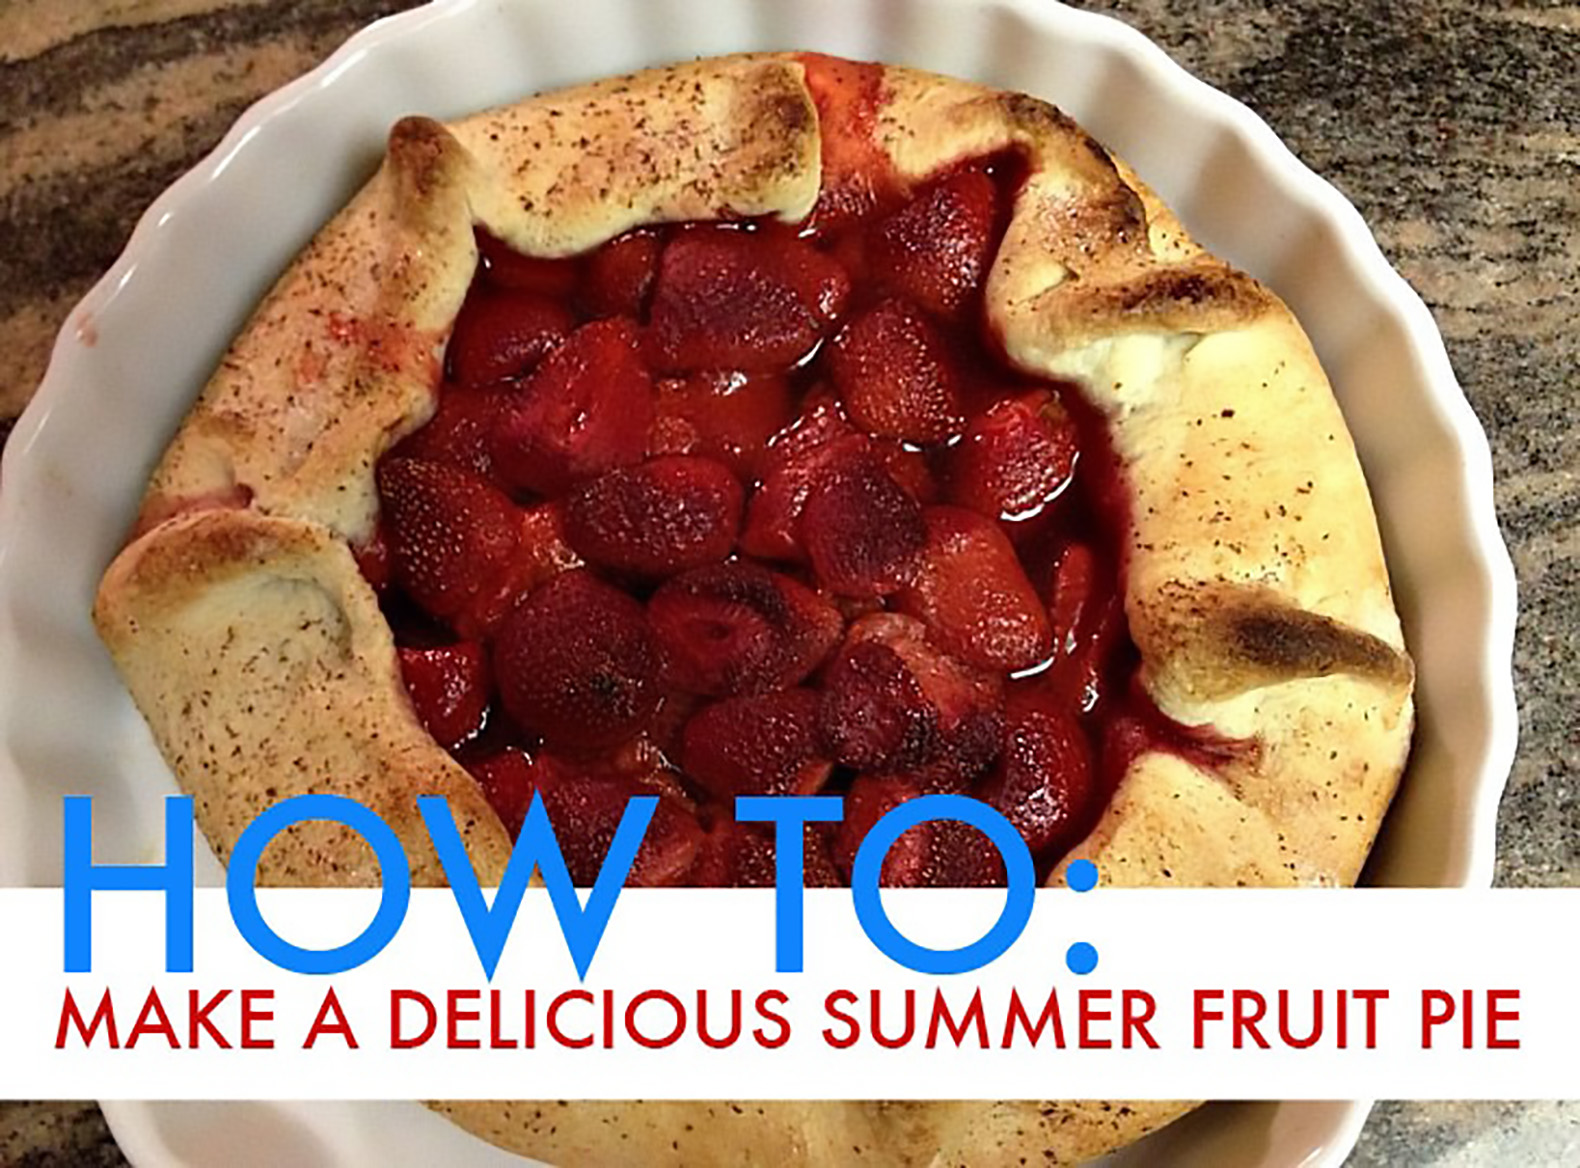 How To: 6 Steps To an Easy and Delicious Summer Fruit Pie